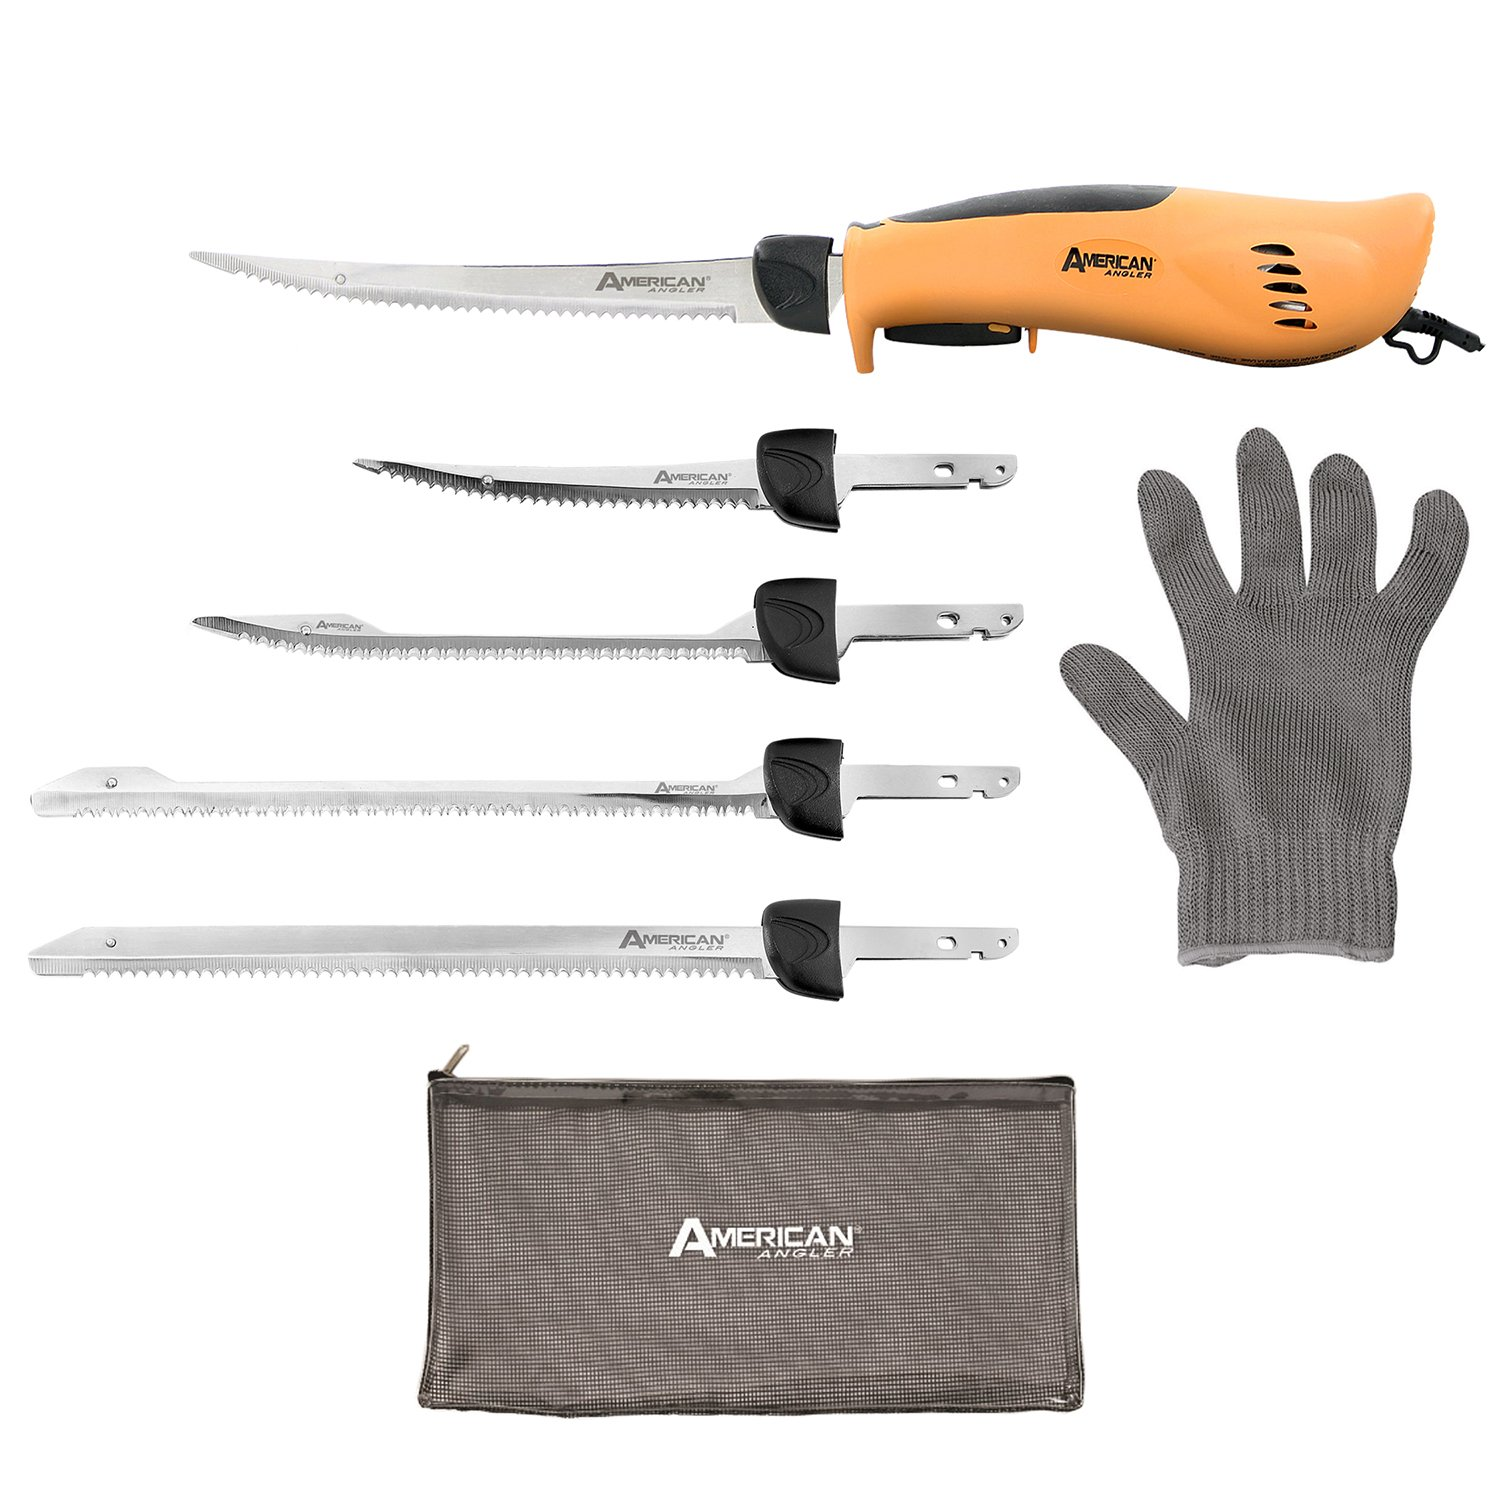 American Angler PRO Professional Grade Electric Fillet Knife Sportsmen's Kit